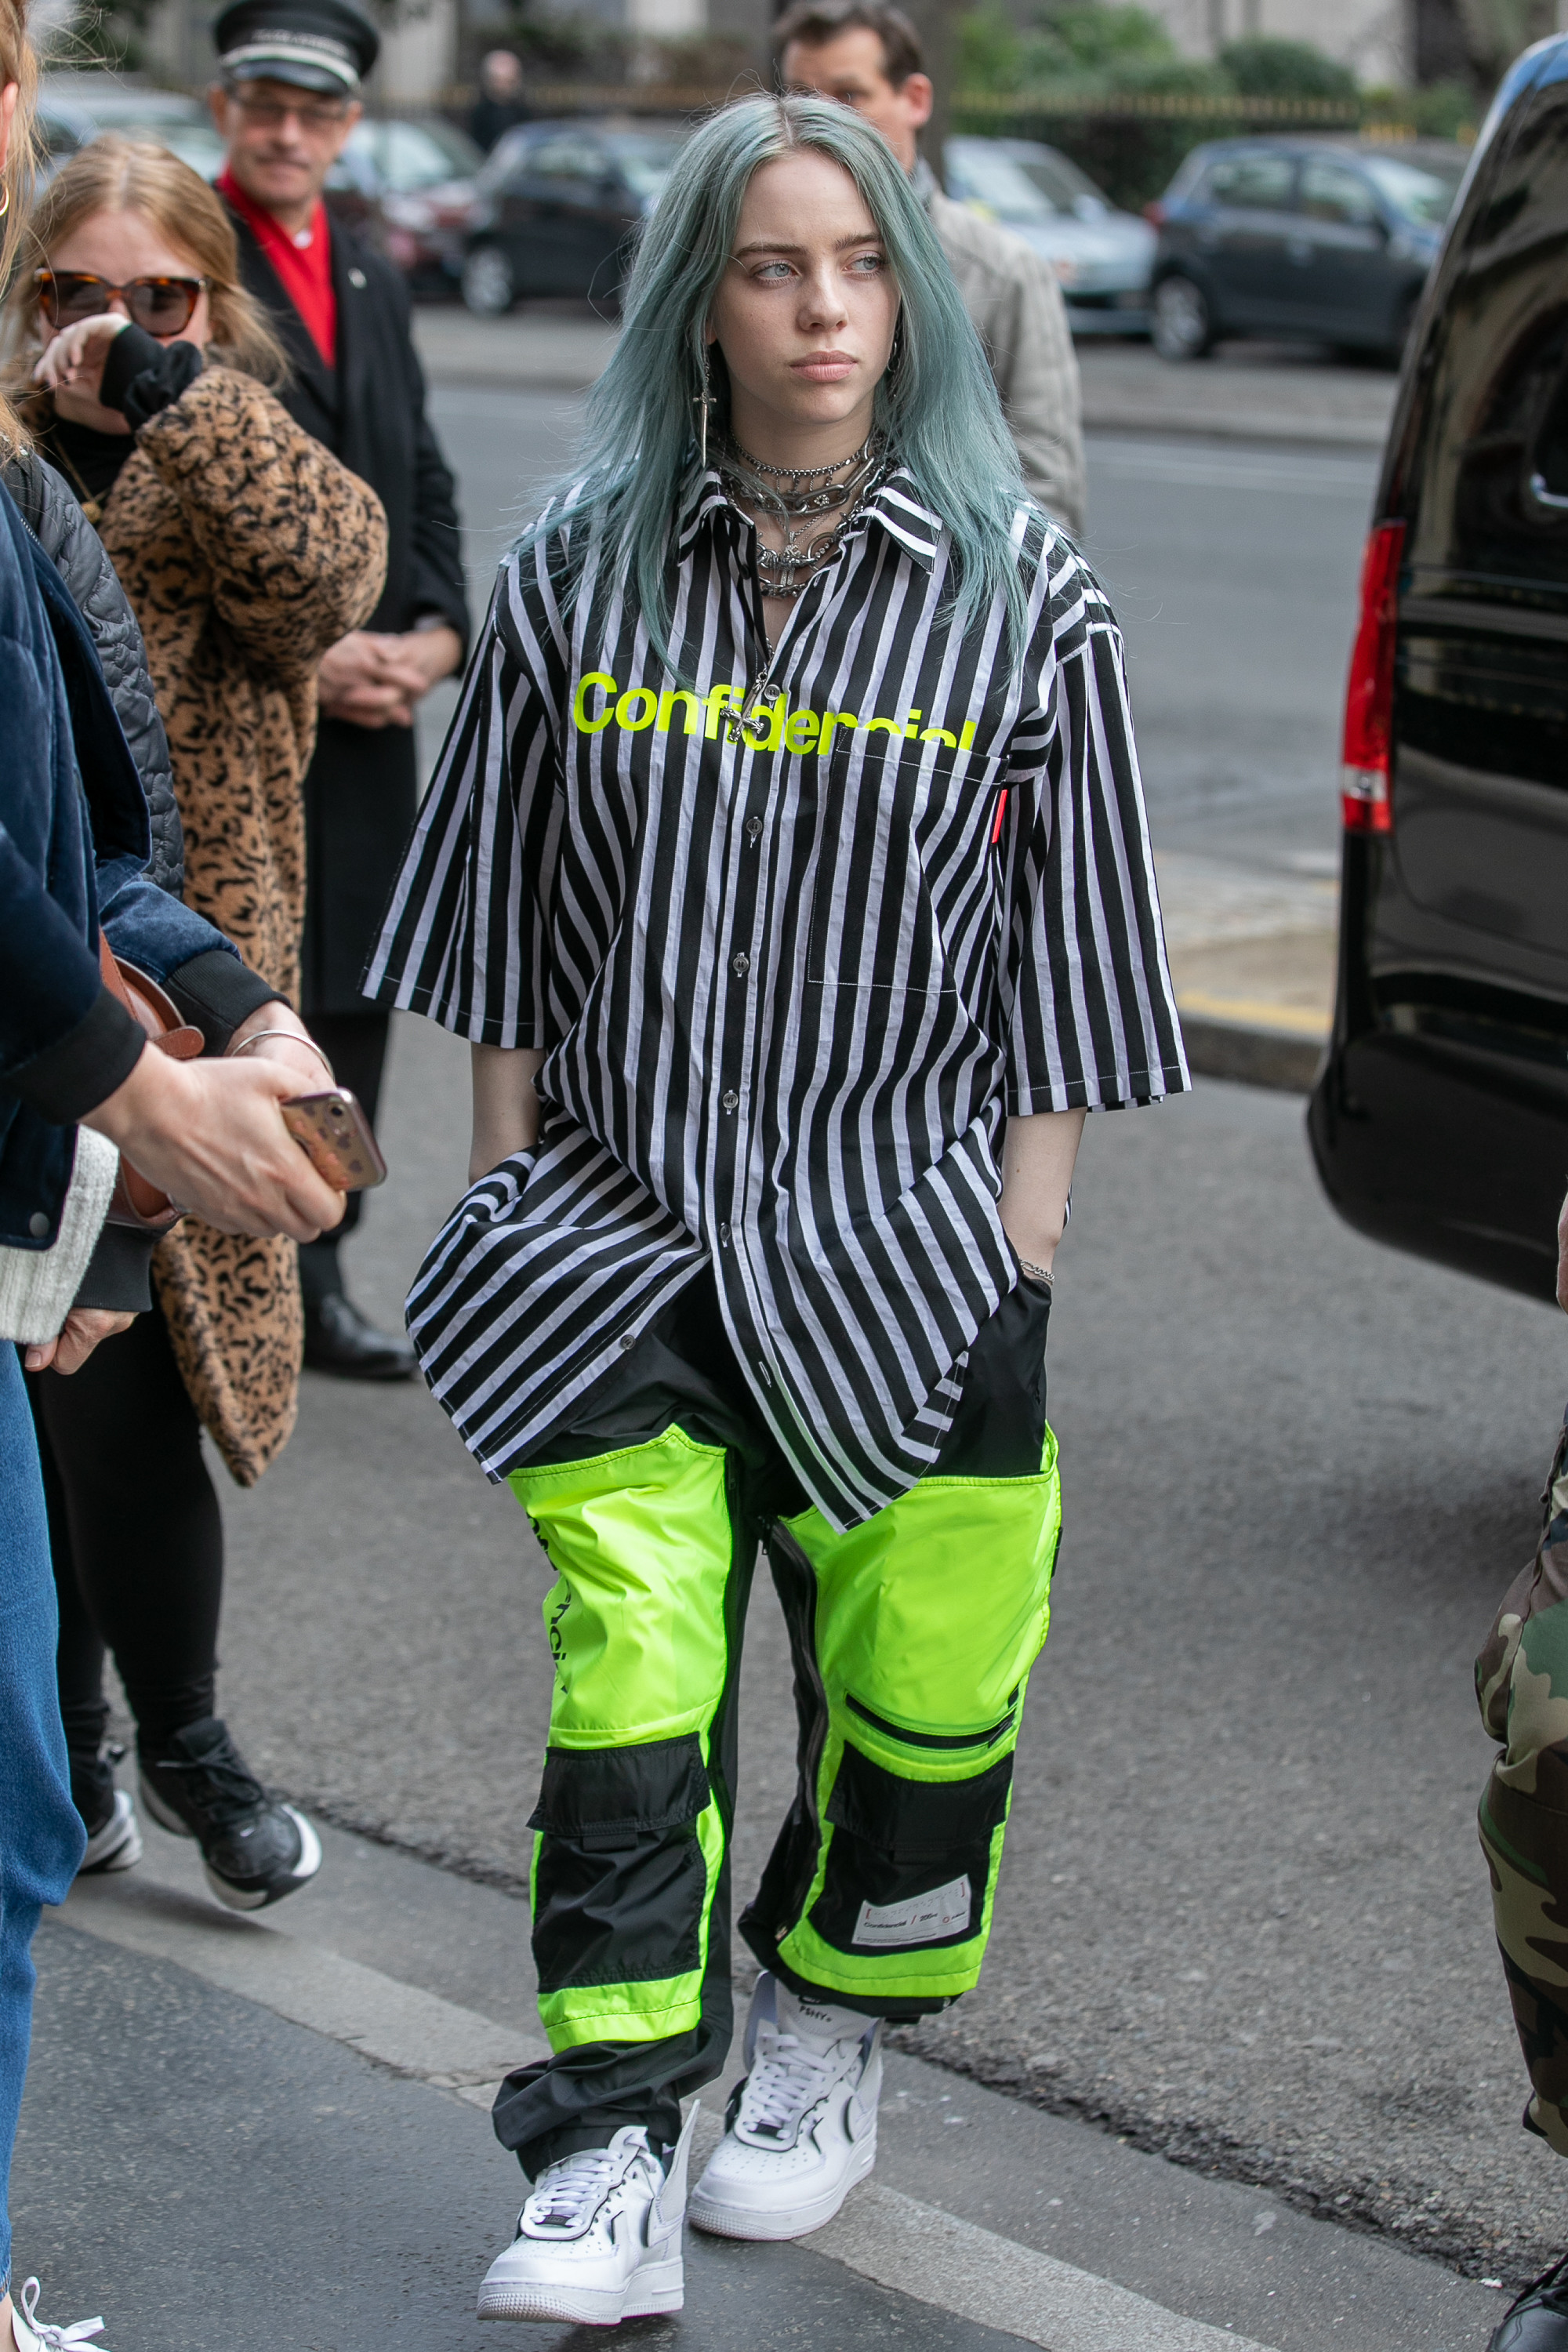 Billie Eilish S Best Outfits Ranked Stylebistro